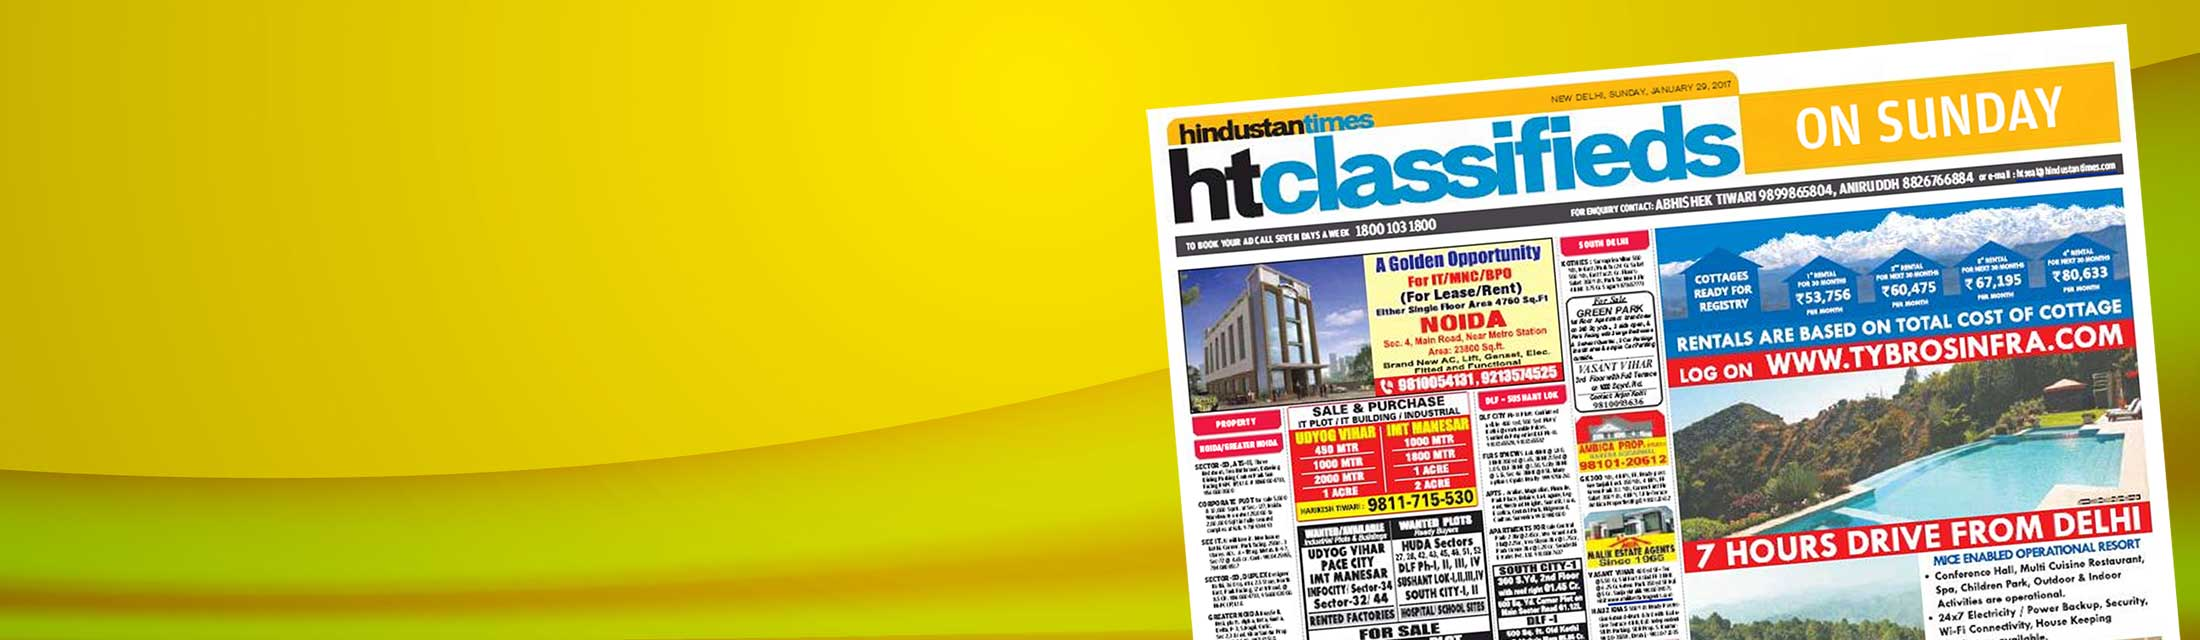 Classified Advertisement in Hindustan Times